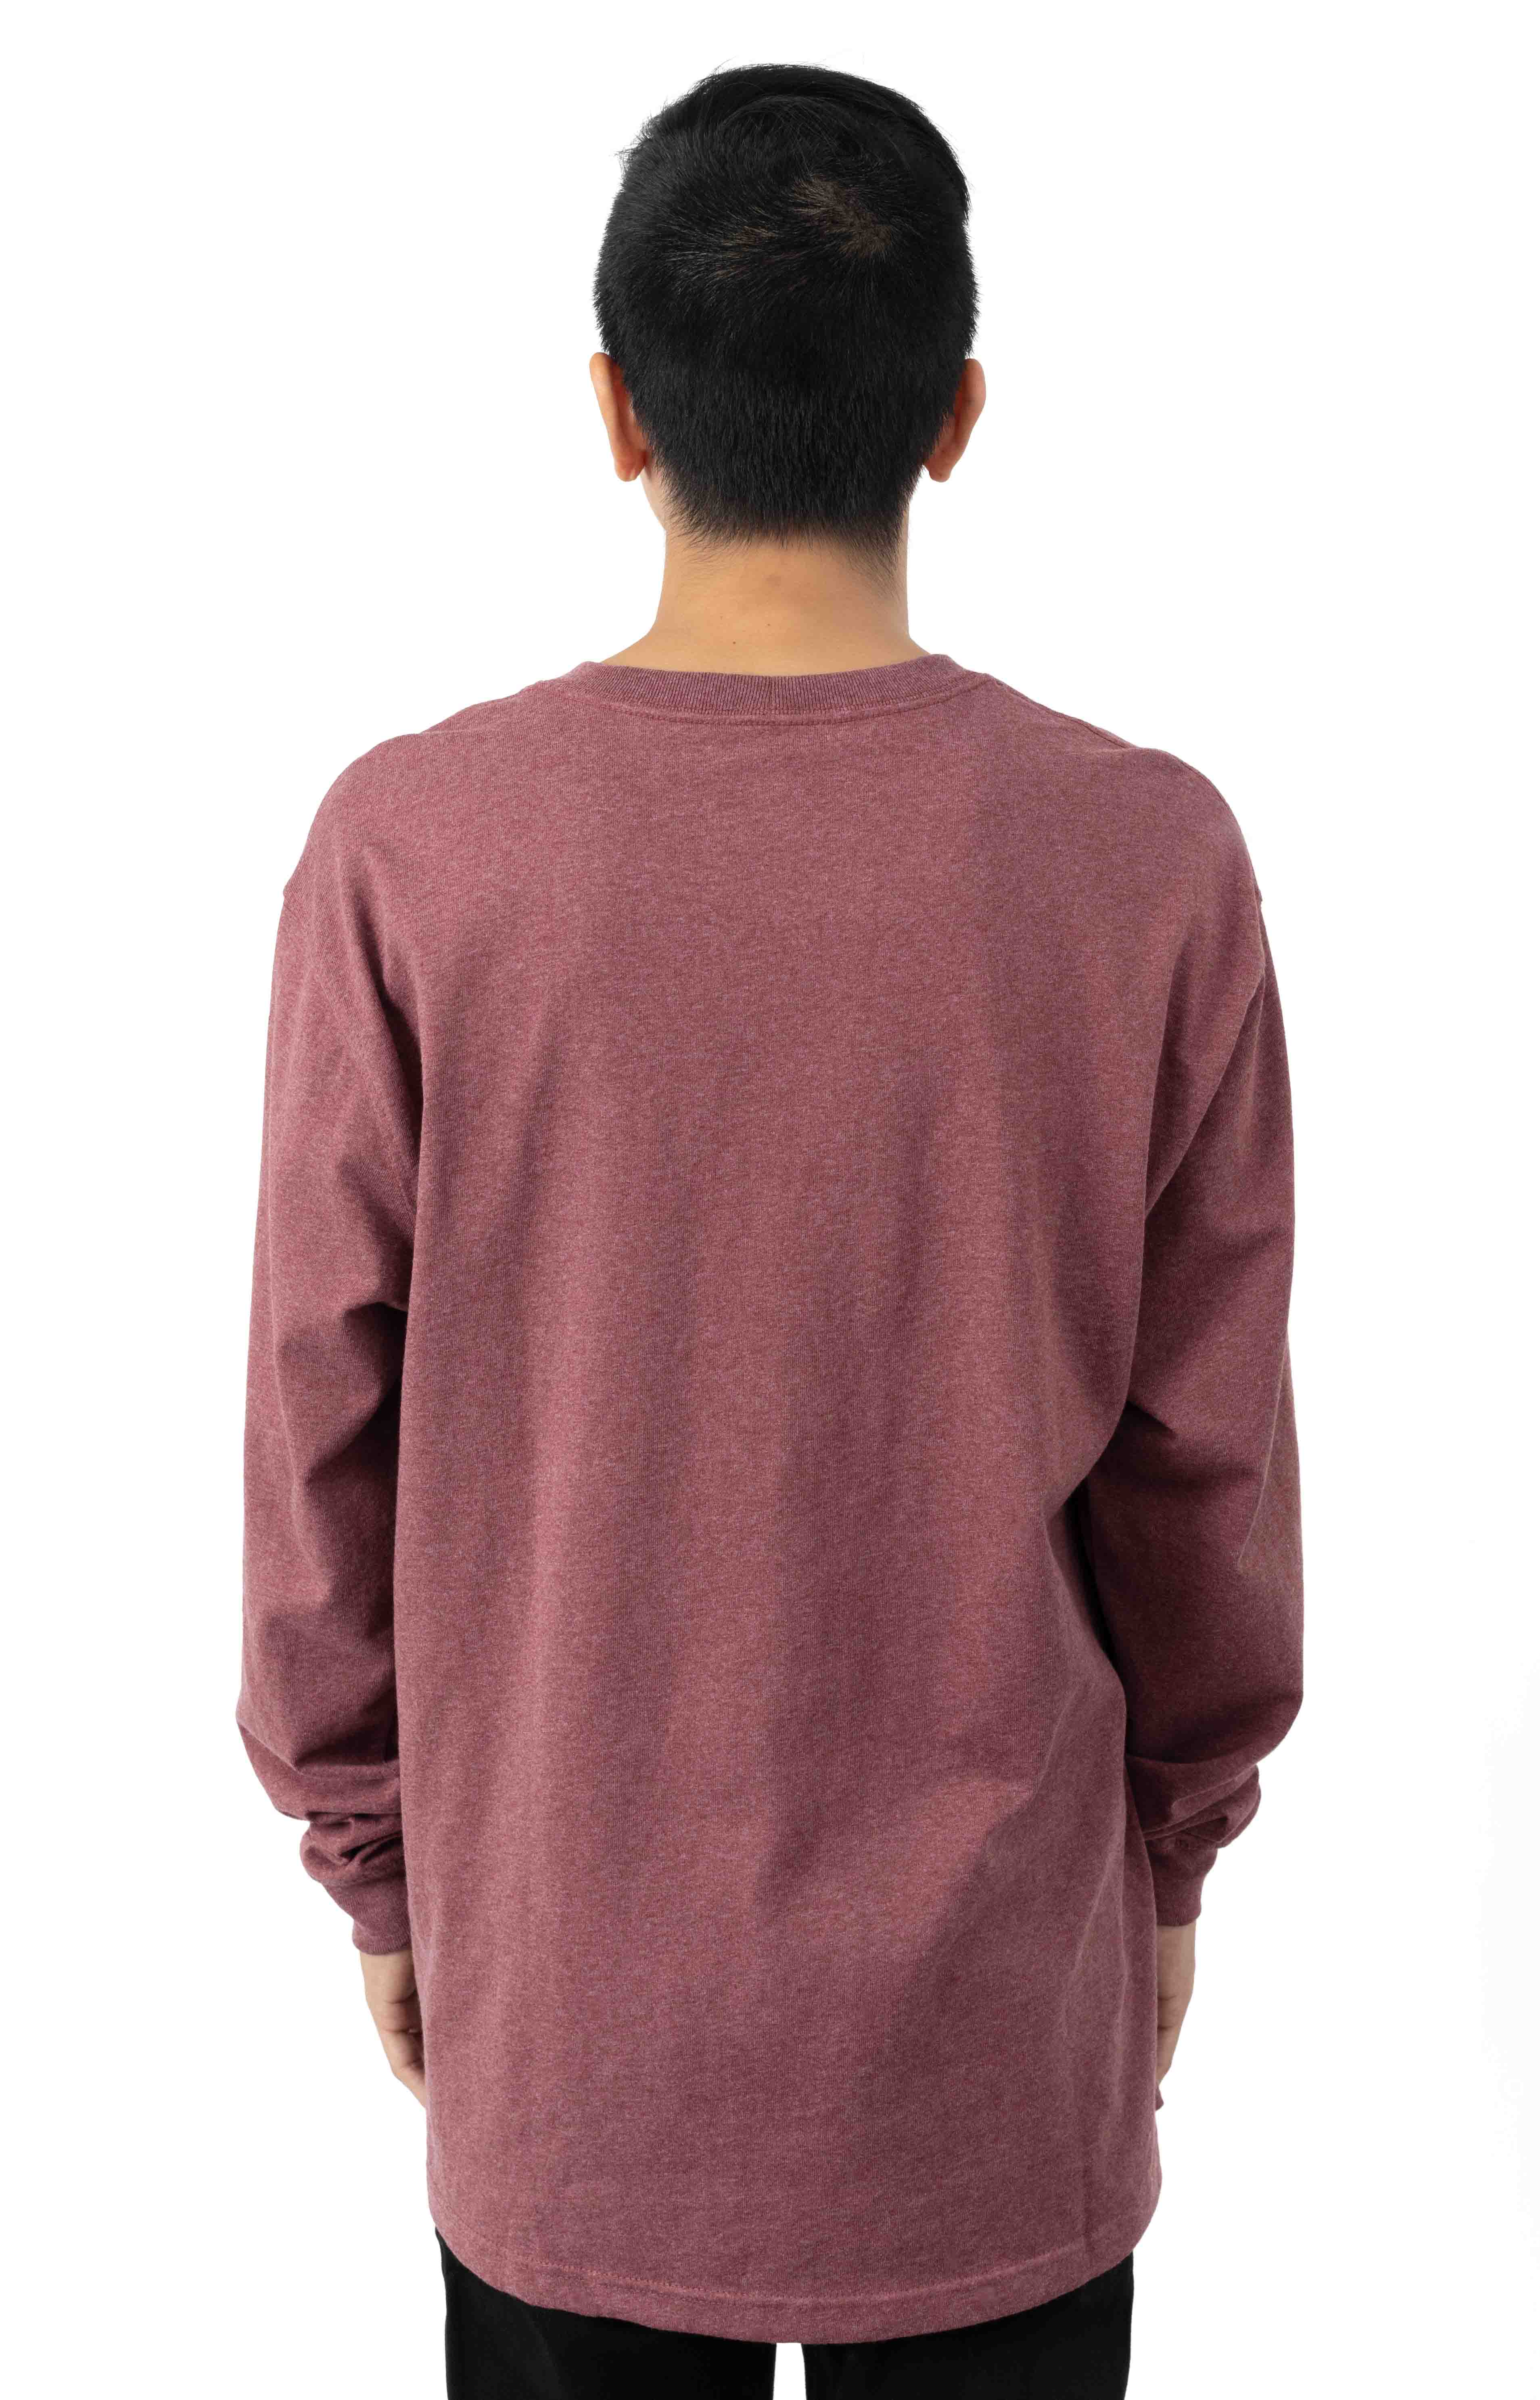 (K126) L/S Workwear Pocket Shirt - Iron Ore Heather  3